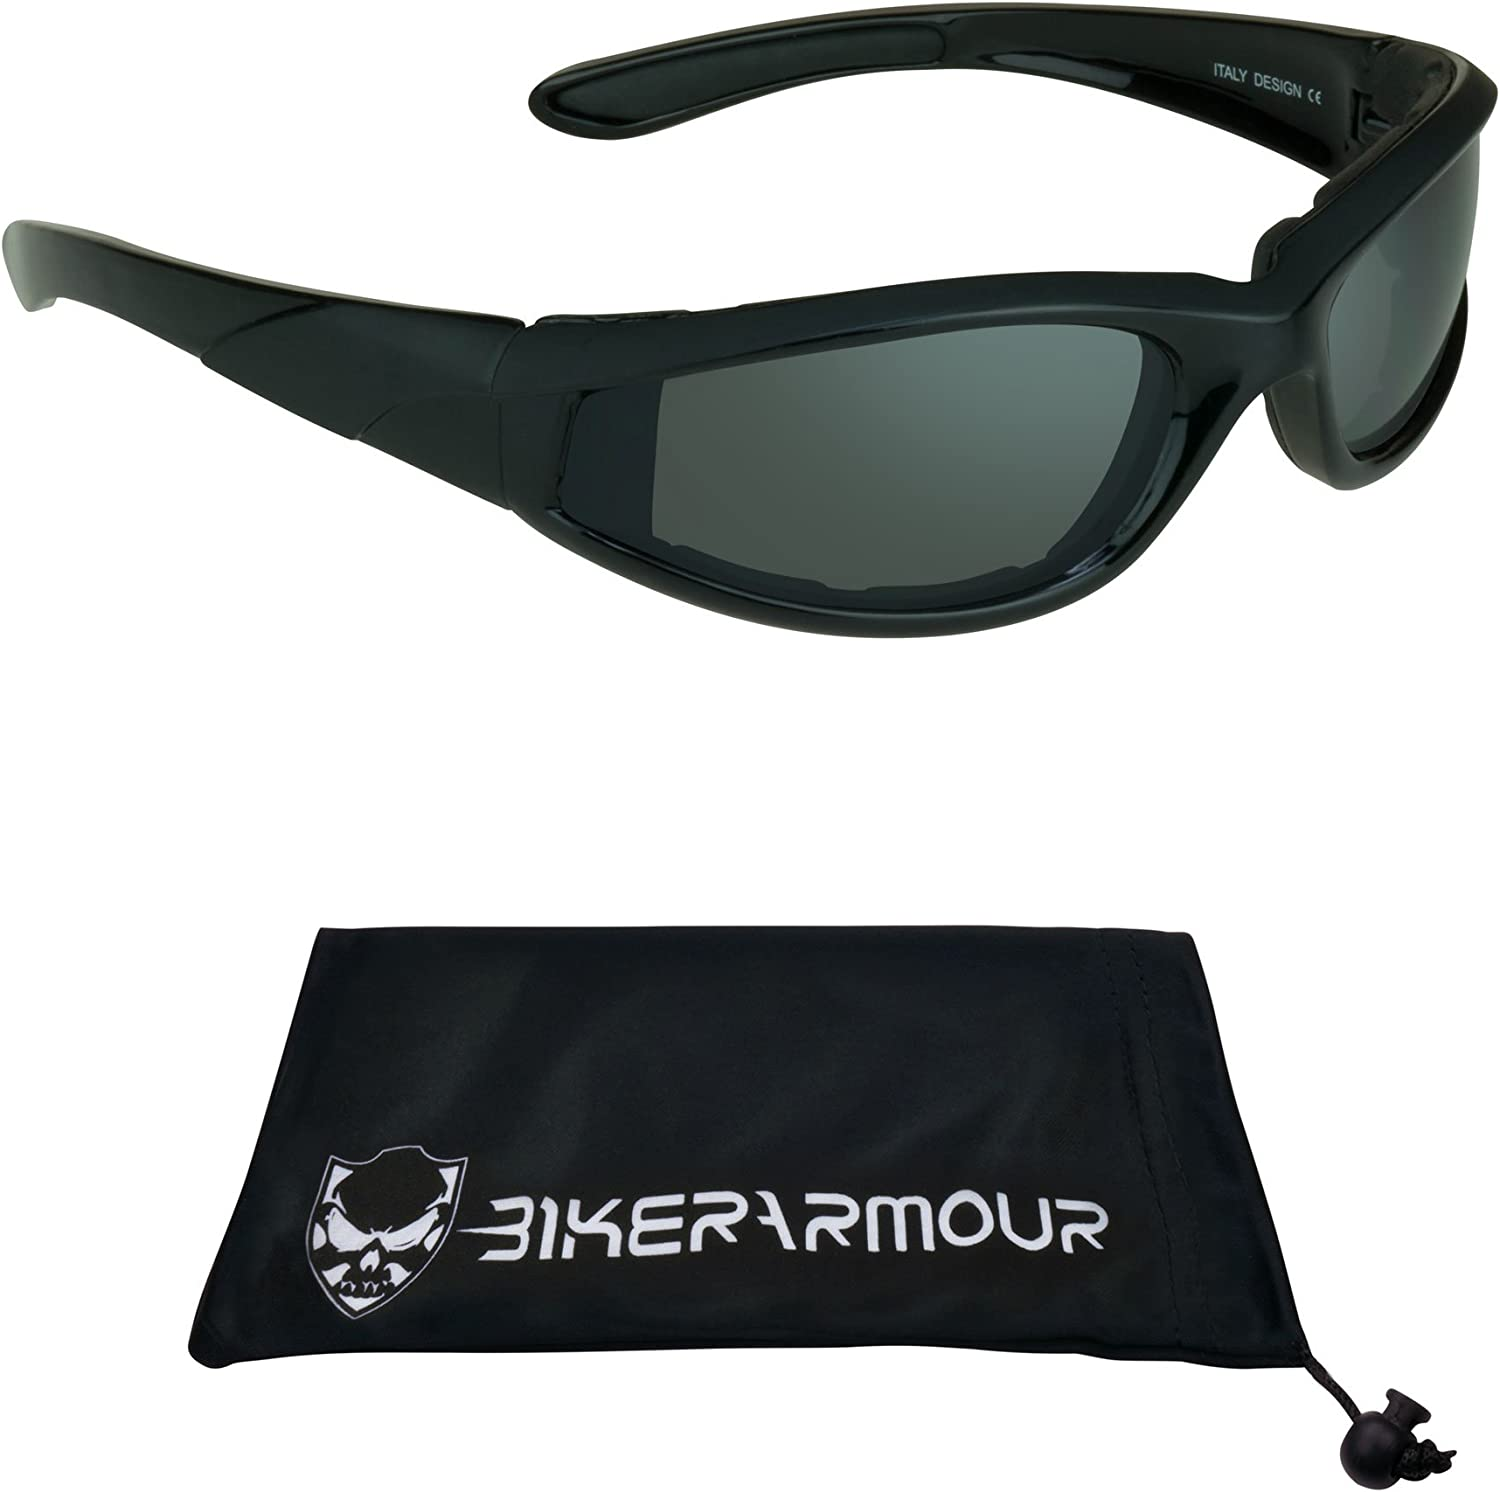 Motorcycle Riding Glasses Foam Padded 2 pairs combo special